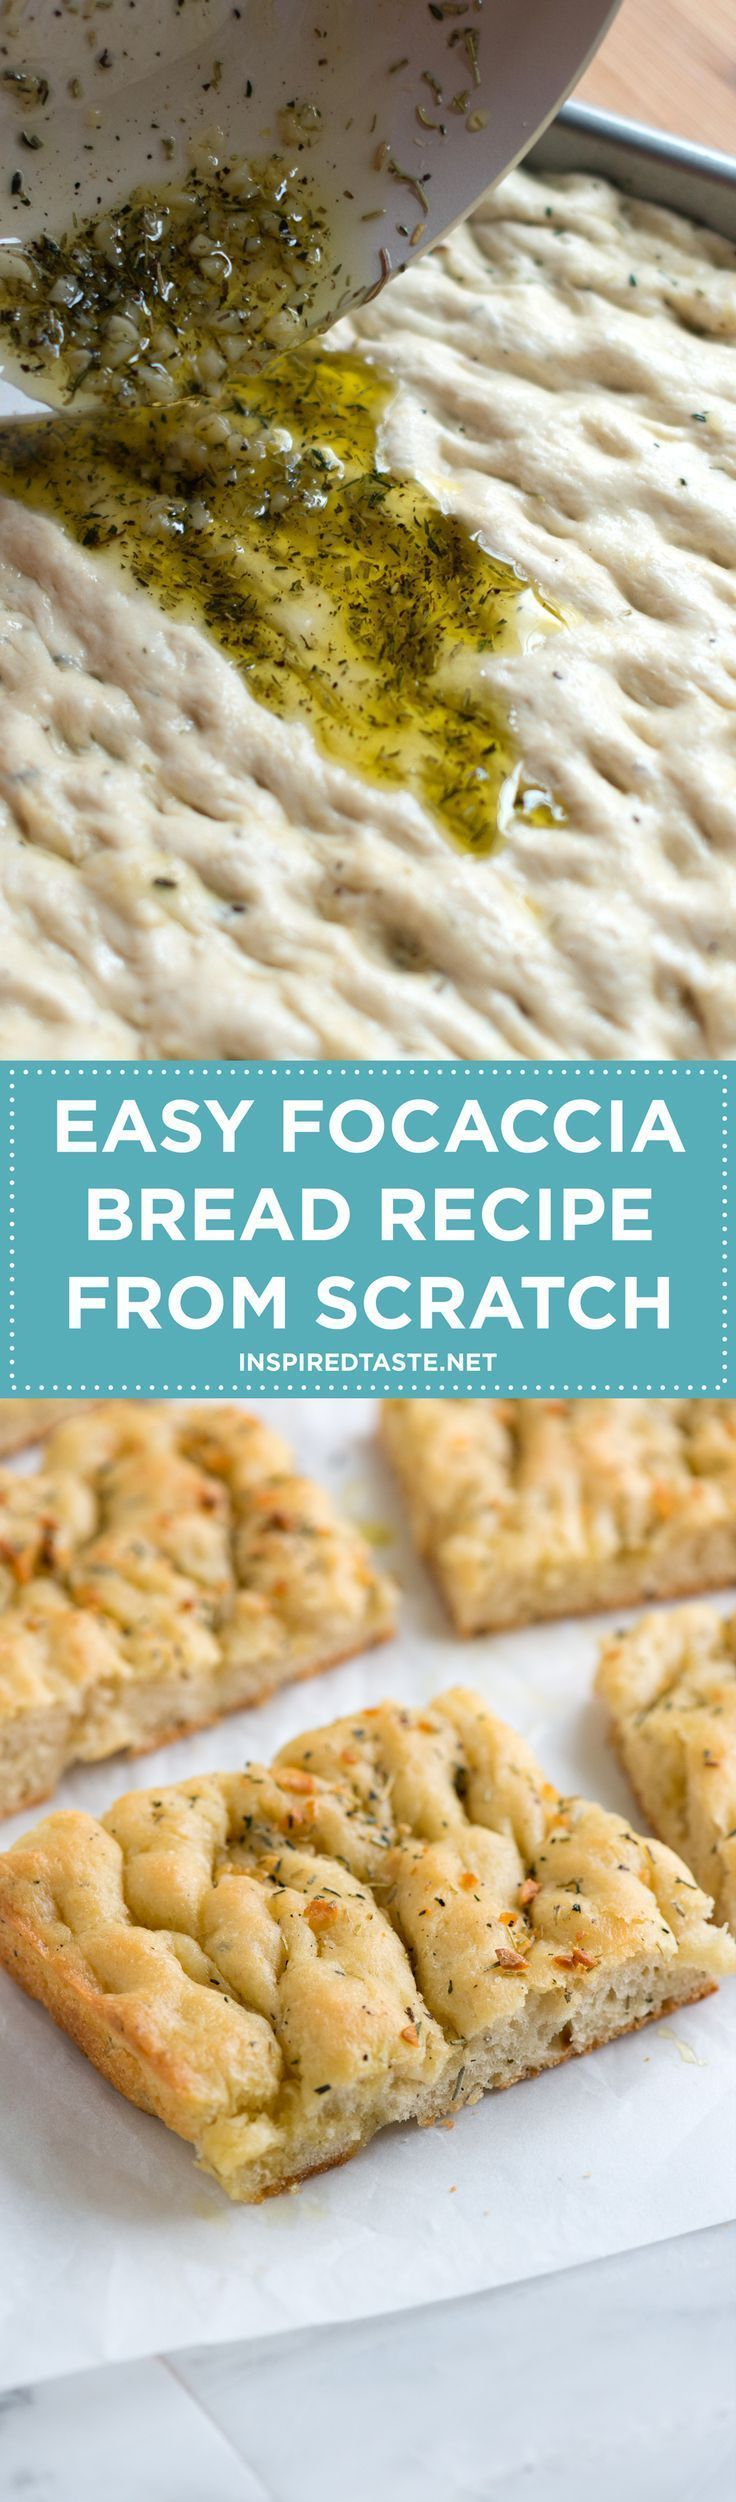 Our focaccia bread recipe is very simple to make – no fancy equipment is needed at all. If you want to make your own bread, this is where to start! Recipe on inspiredtaste.net | @inspiredtaste